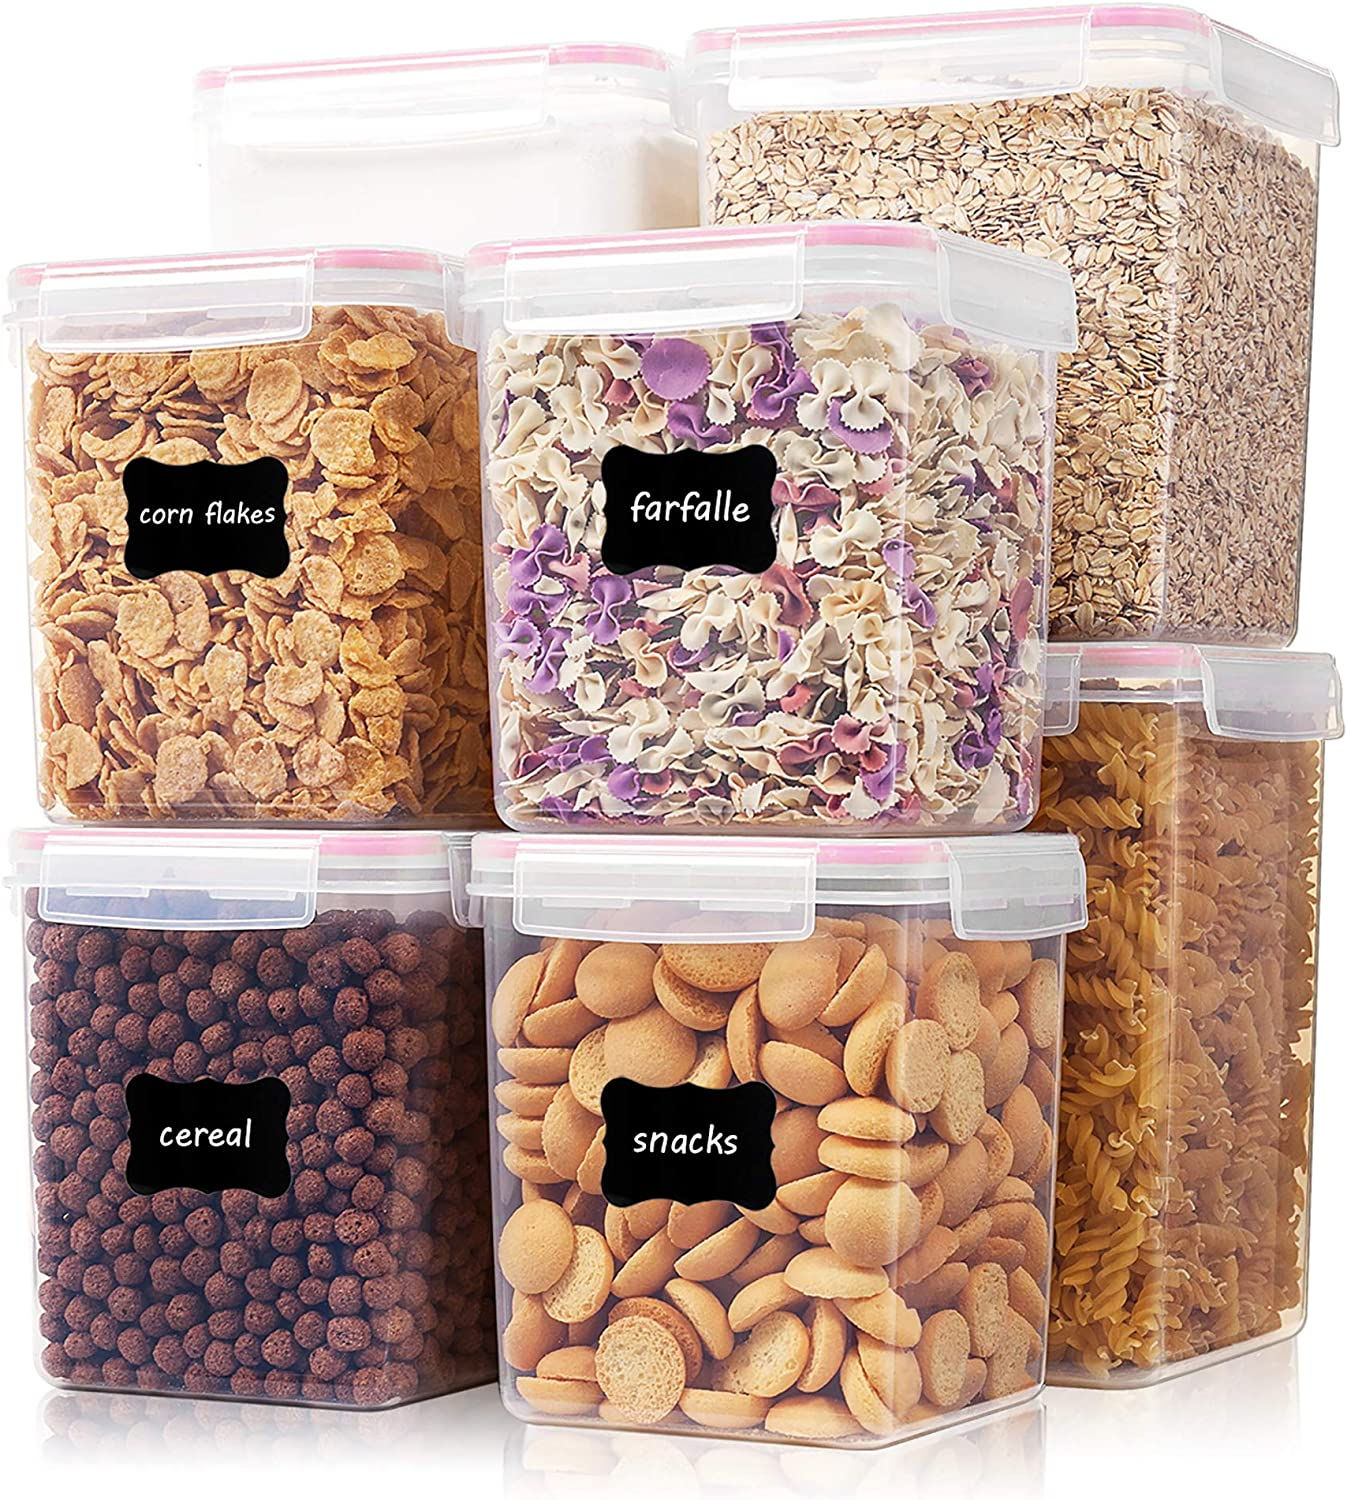 Large Tall Airtight Food Storage Containers 8 Pieces, Vtopmart BPA Free Plastic Kitchen Storage Containers for Bulk Food, Flour, Sugar and Baking Supplies, with 24 Labels, Pink